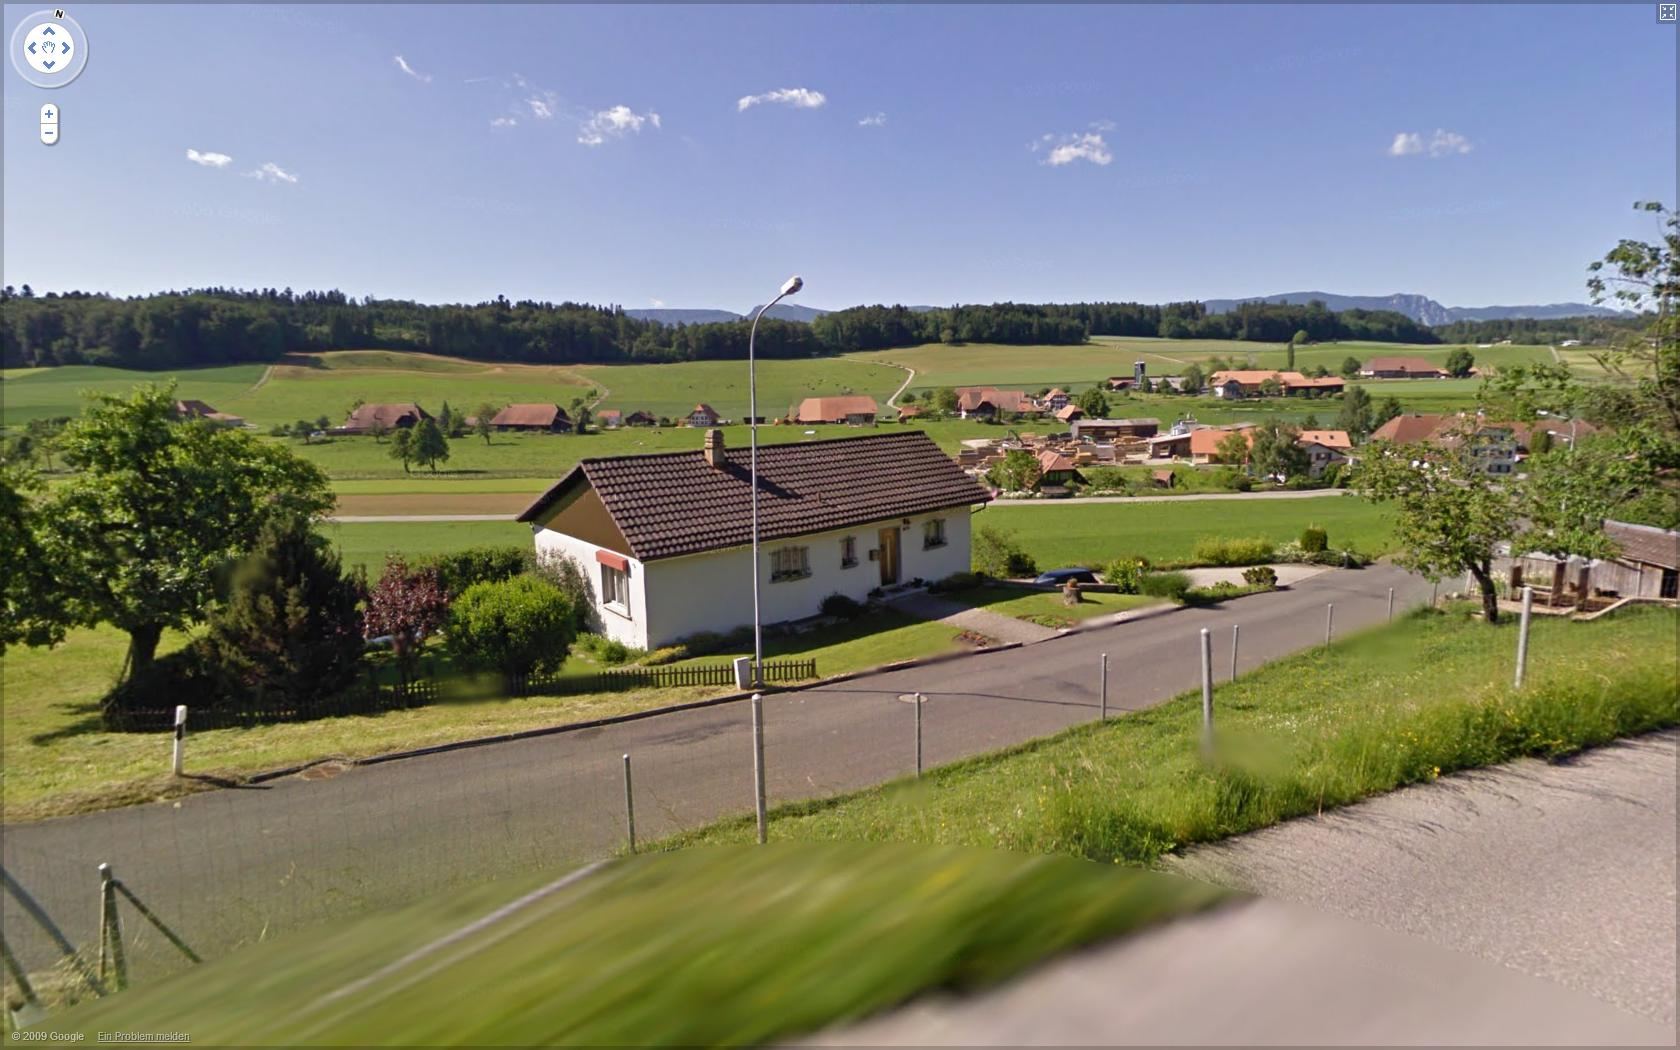 Google Streetview of where I grew up